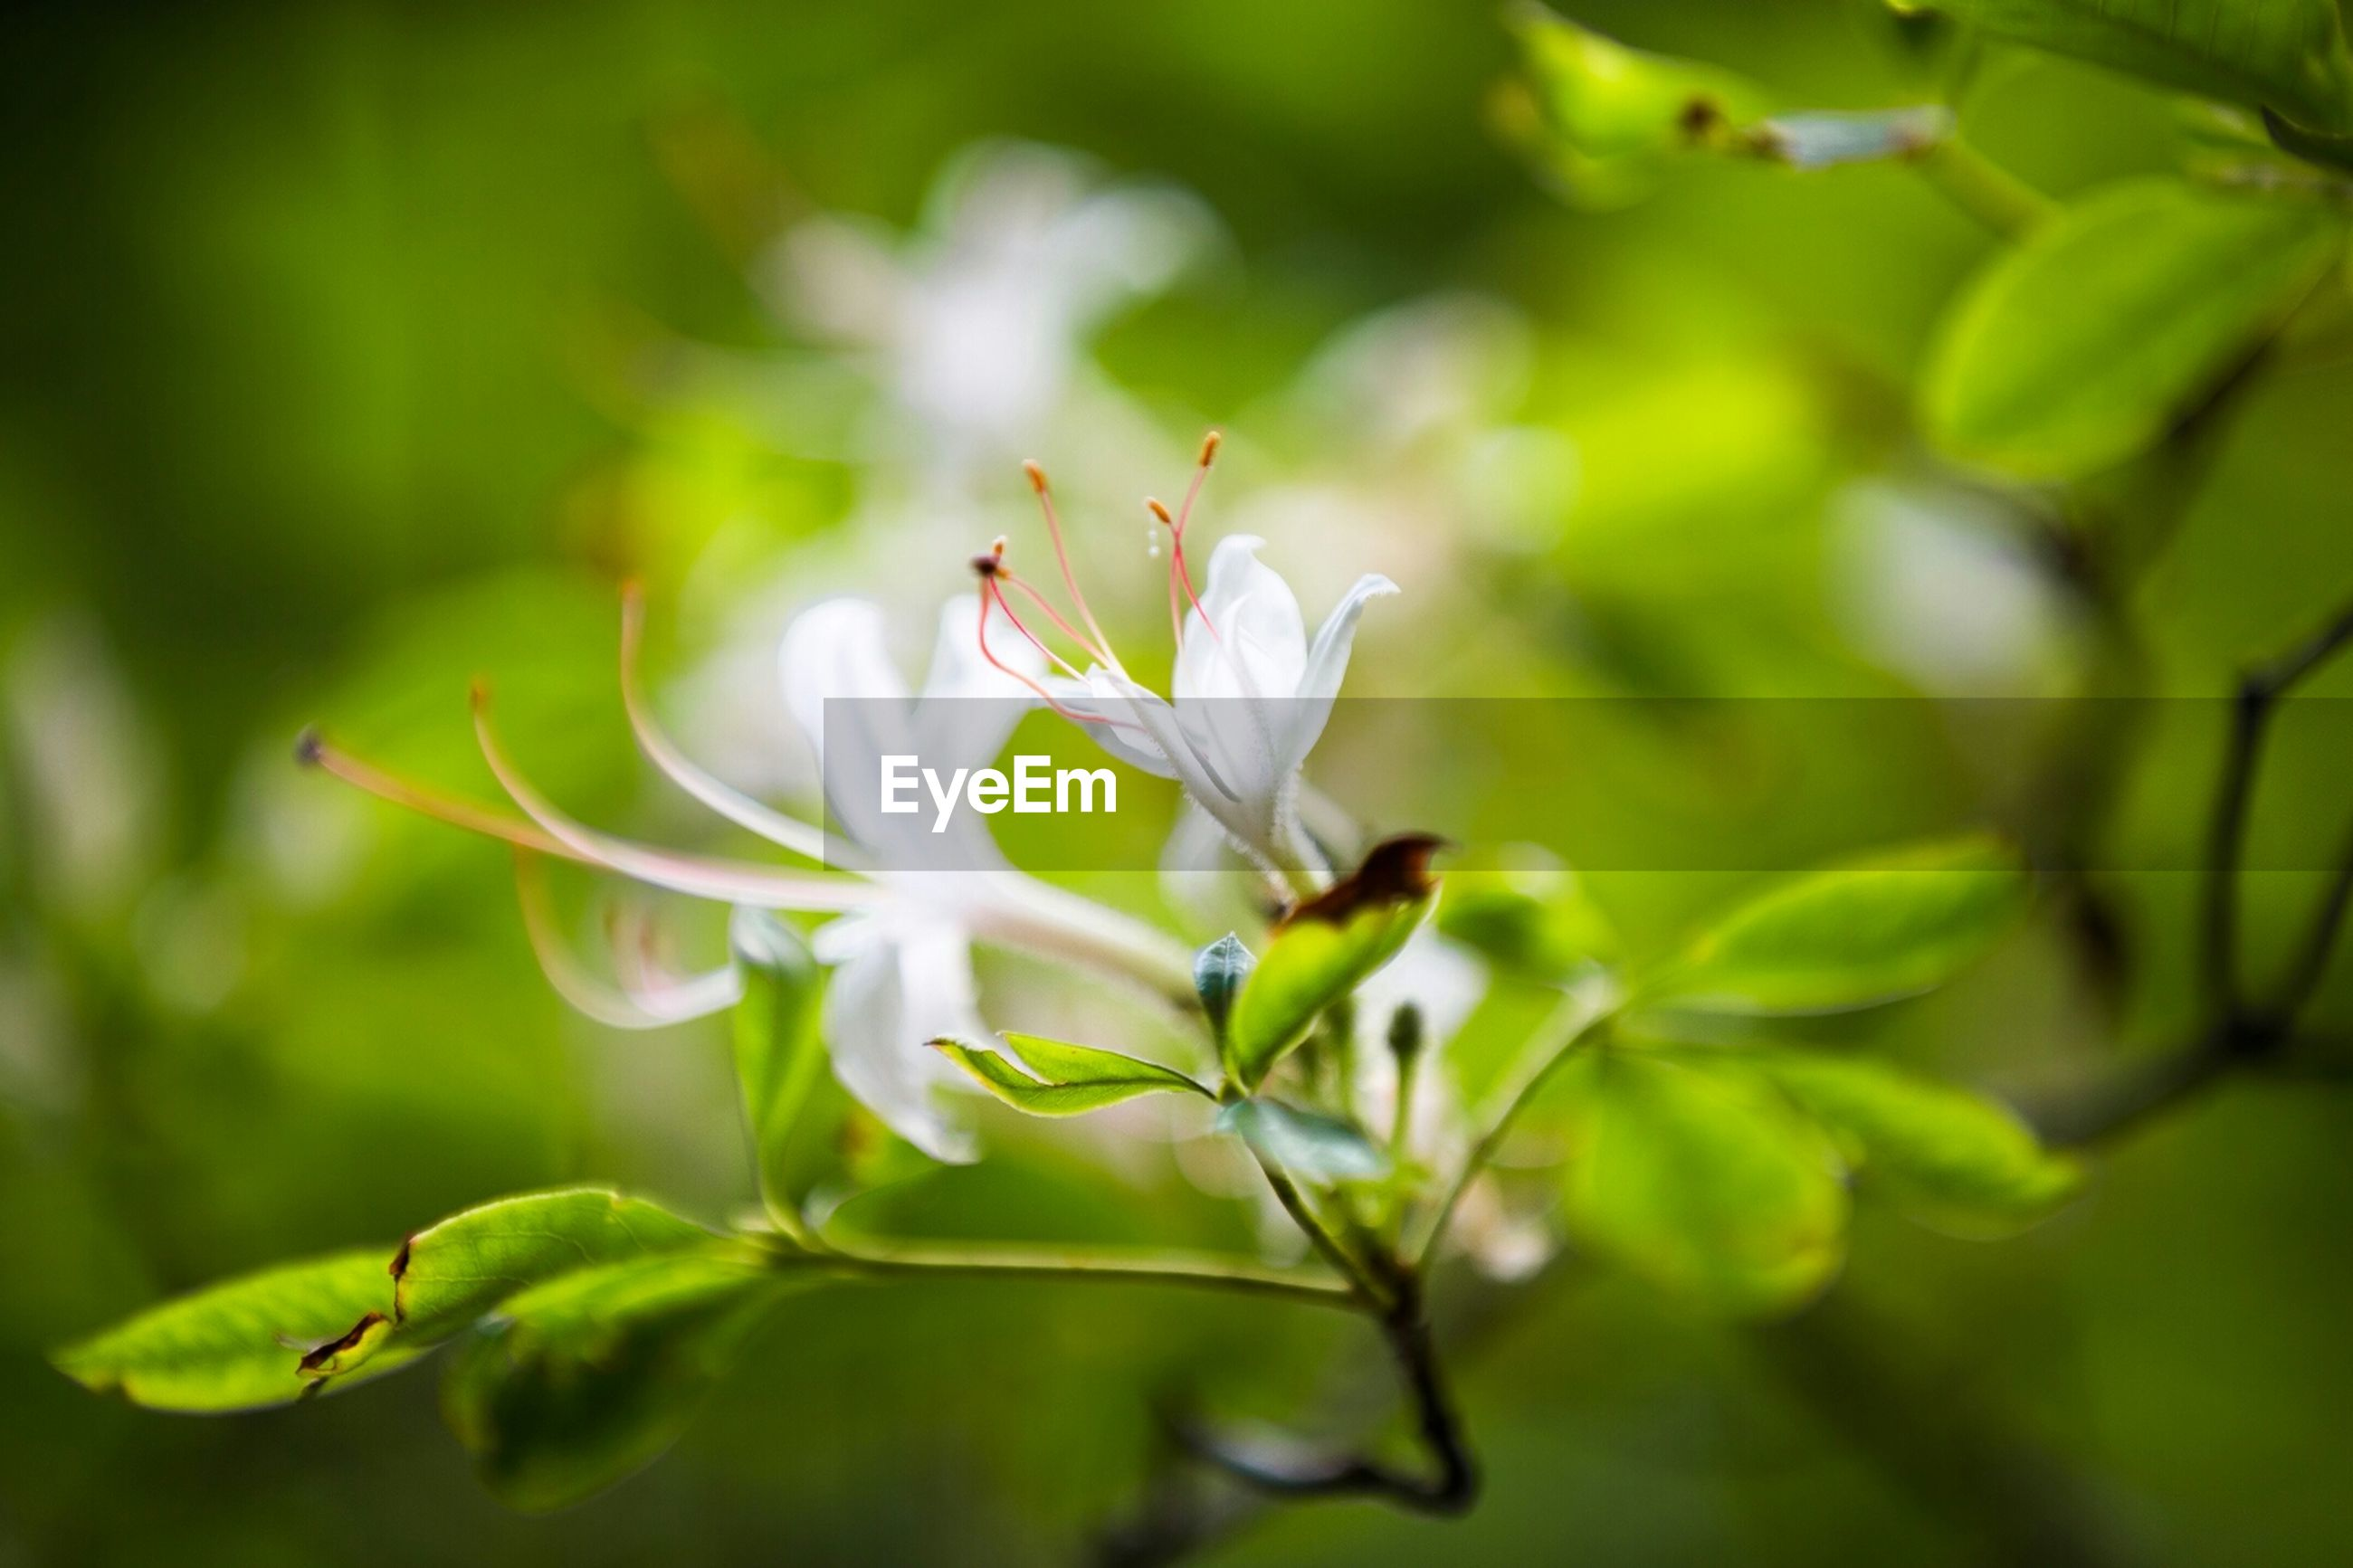 flower, growth, freshness, petal, white color, fragility, flower head, beauty in nature, close-up, nature, focus on foreground, blooming, plant, leaf, in bloom, selective focus, white, stamen, blossom, stem